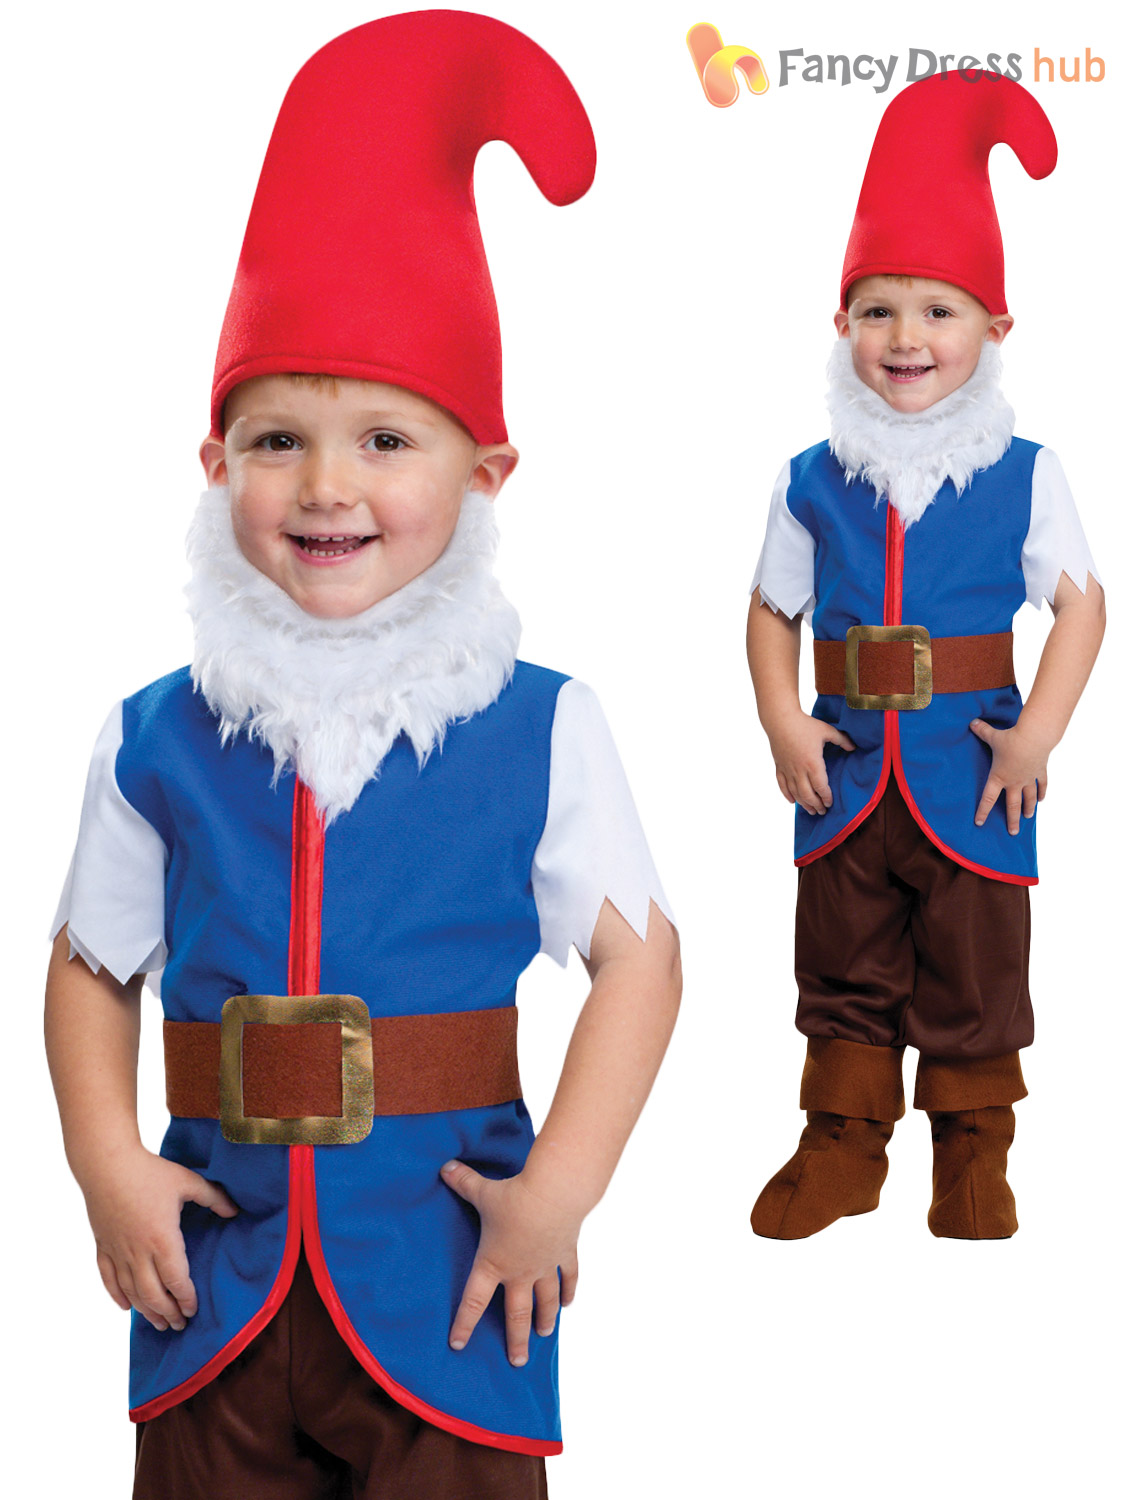 Kids-Garden-Gnome-Fancy-Dress-Costume-Dwarf-Fairytale-Book-Boys-Toddler-Age-3-4